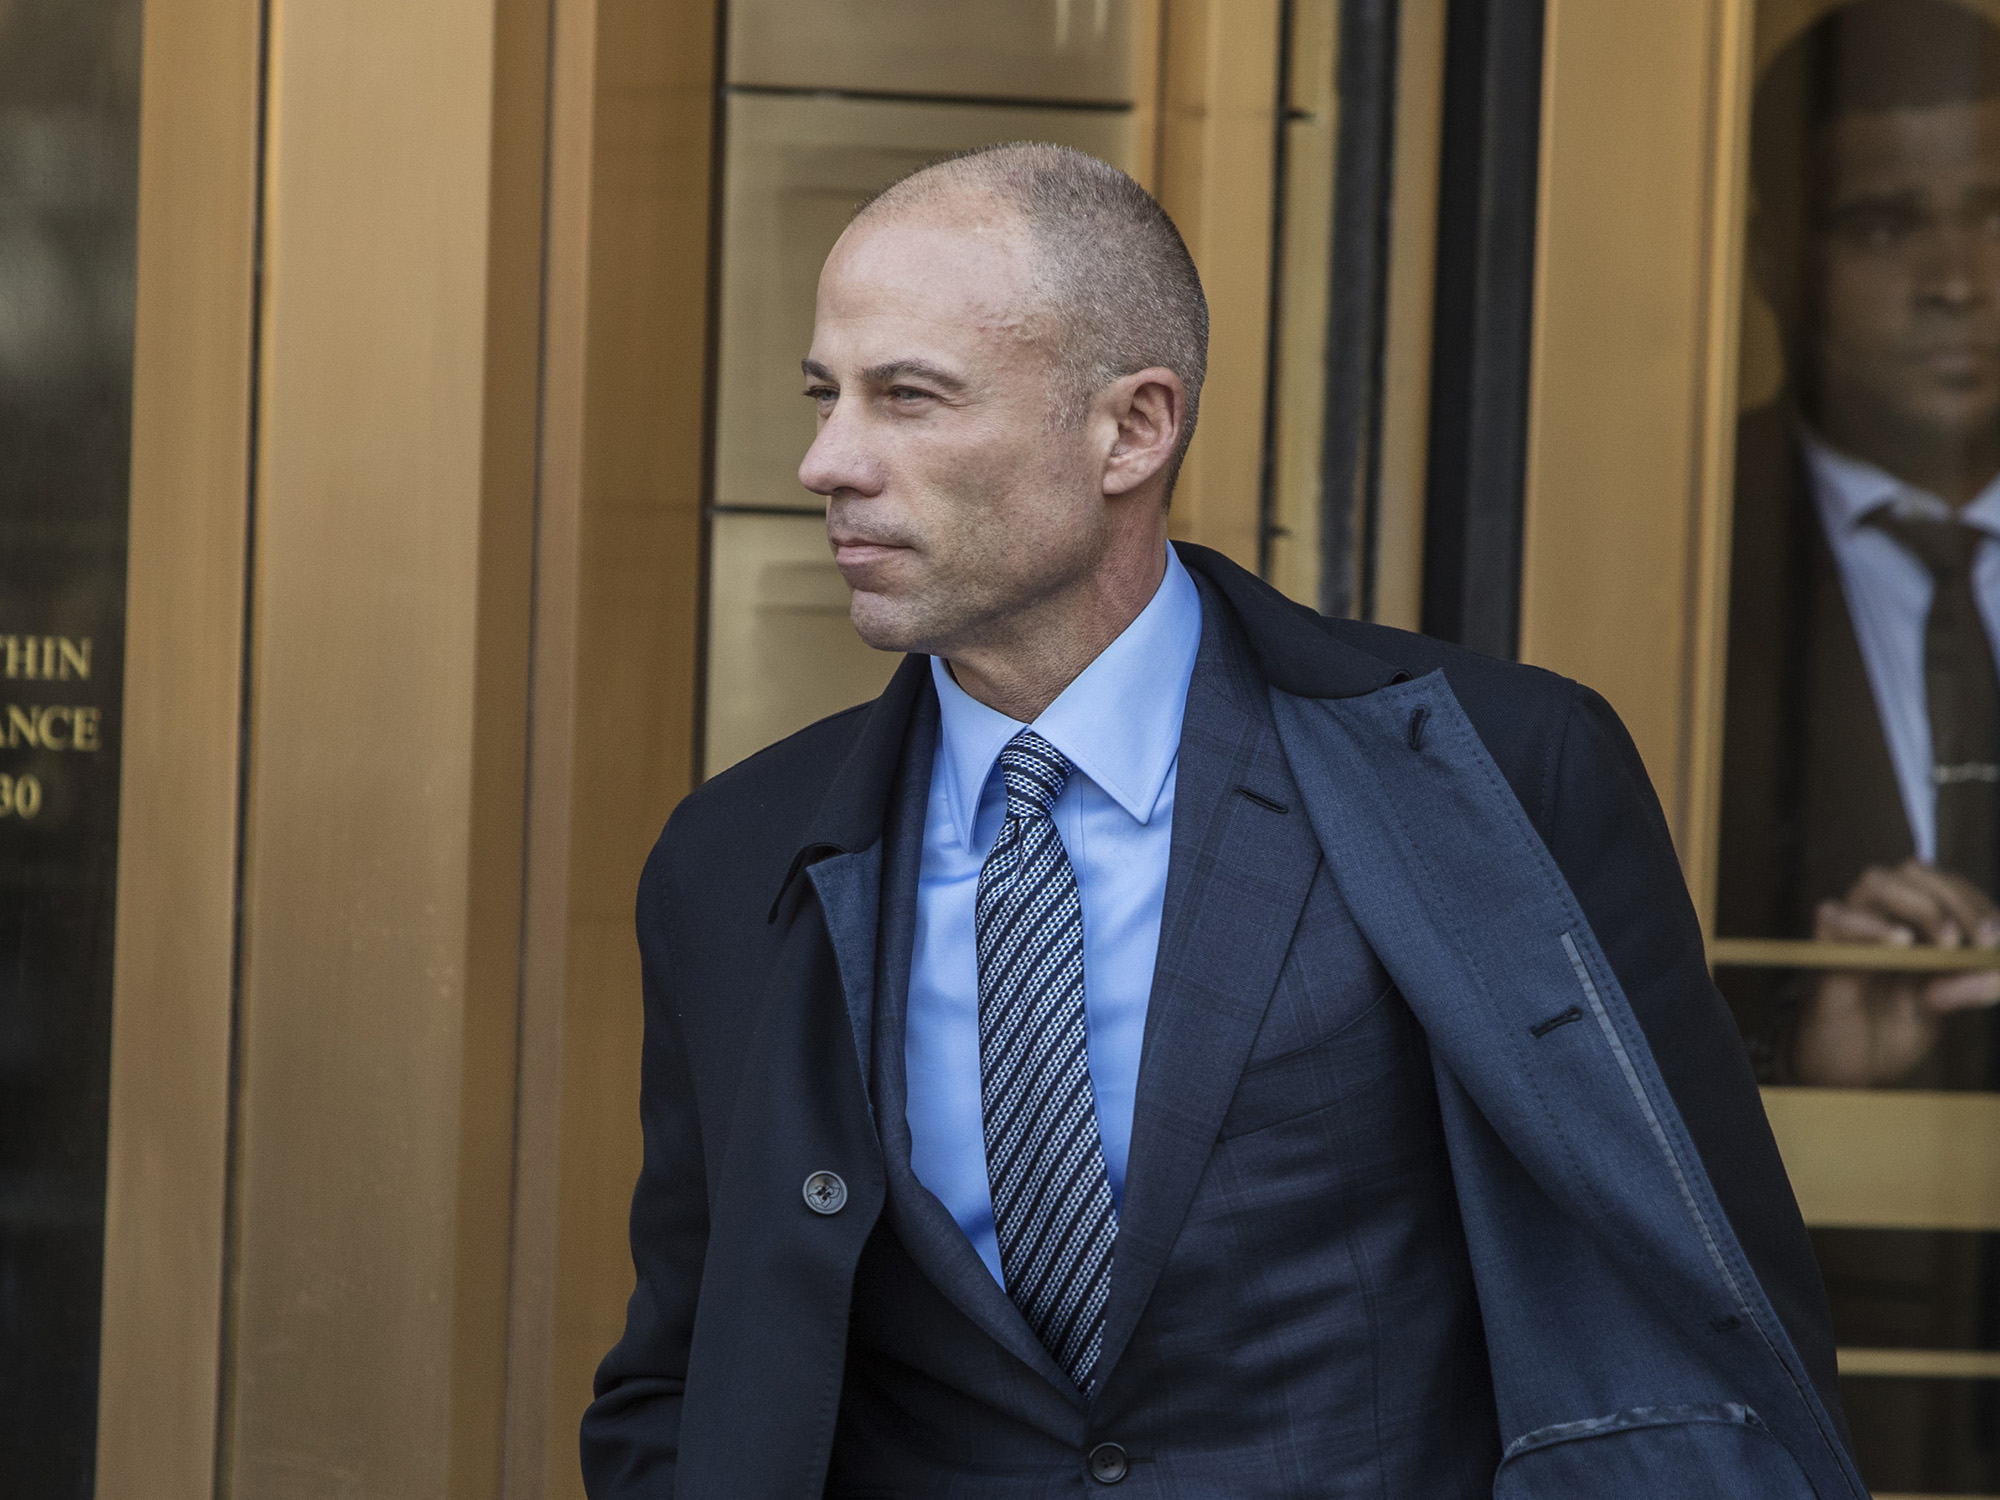 bloomberg.com - Chris Dolmetsch - Michael Avenatti Is Charged With Trying to Extort Nike